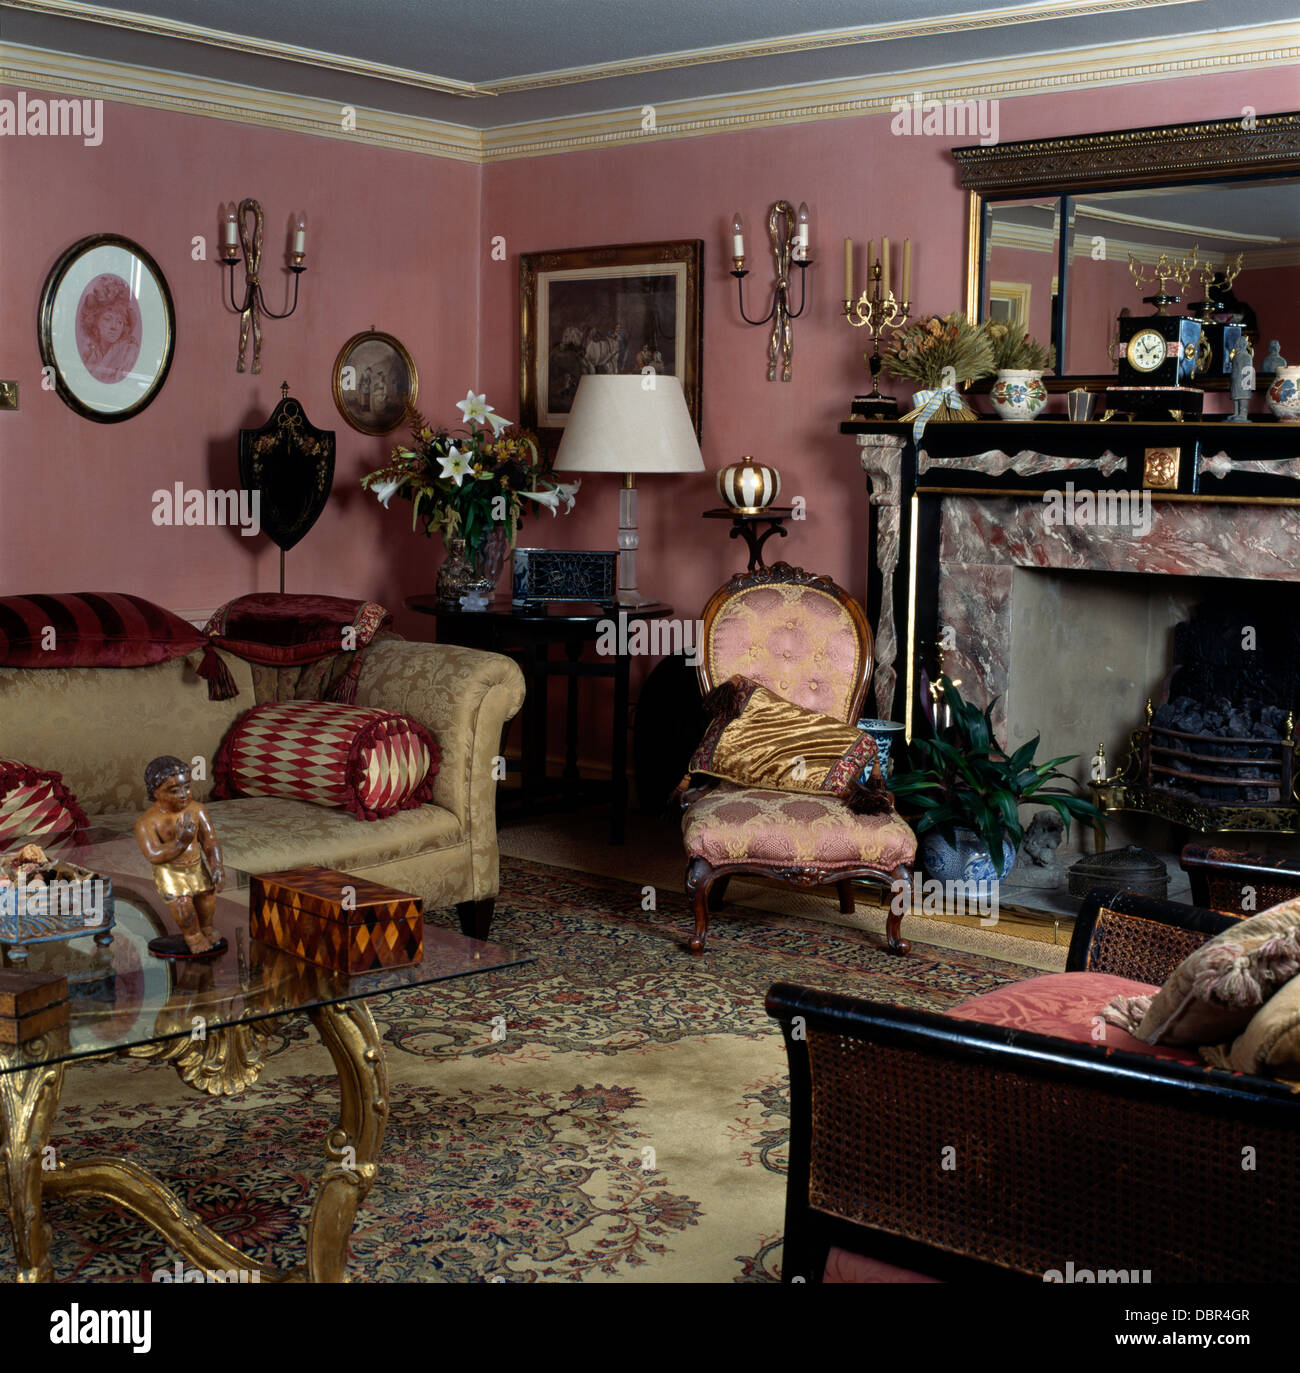 Damask Silk Victorian Chair And Beige Sofa In Dark Pink, Old Fashioned  Living Room With Marble Fireplace